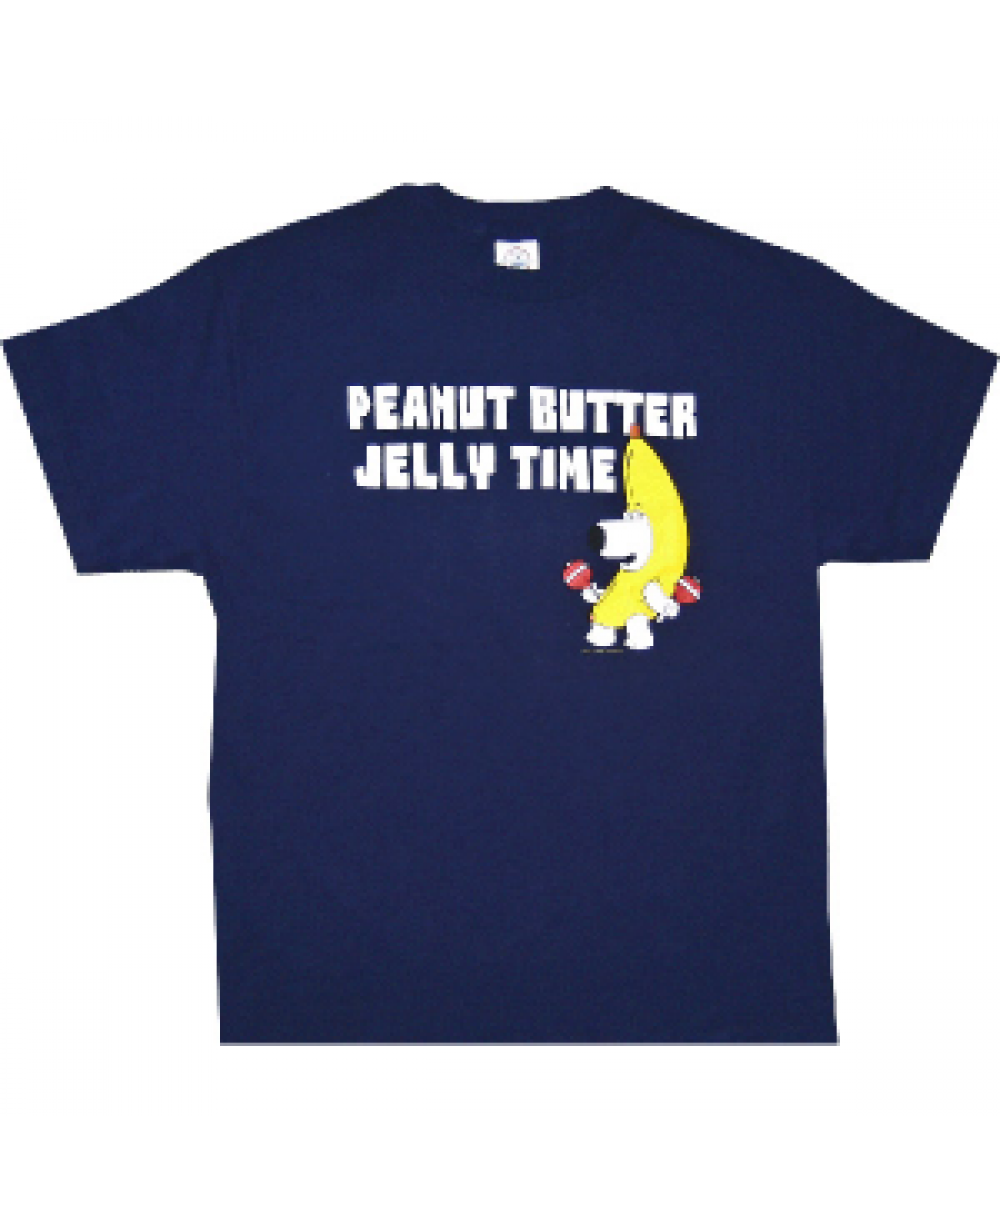 how to get peanut butter oil out of a shirt